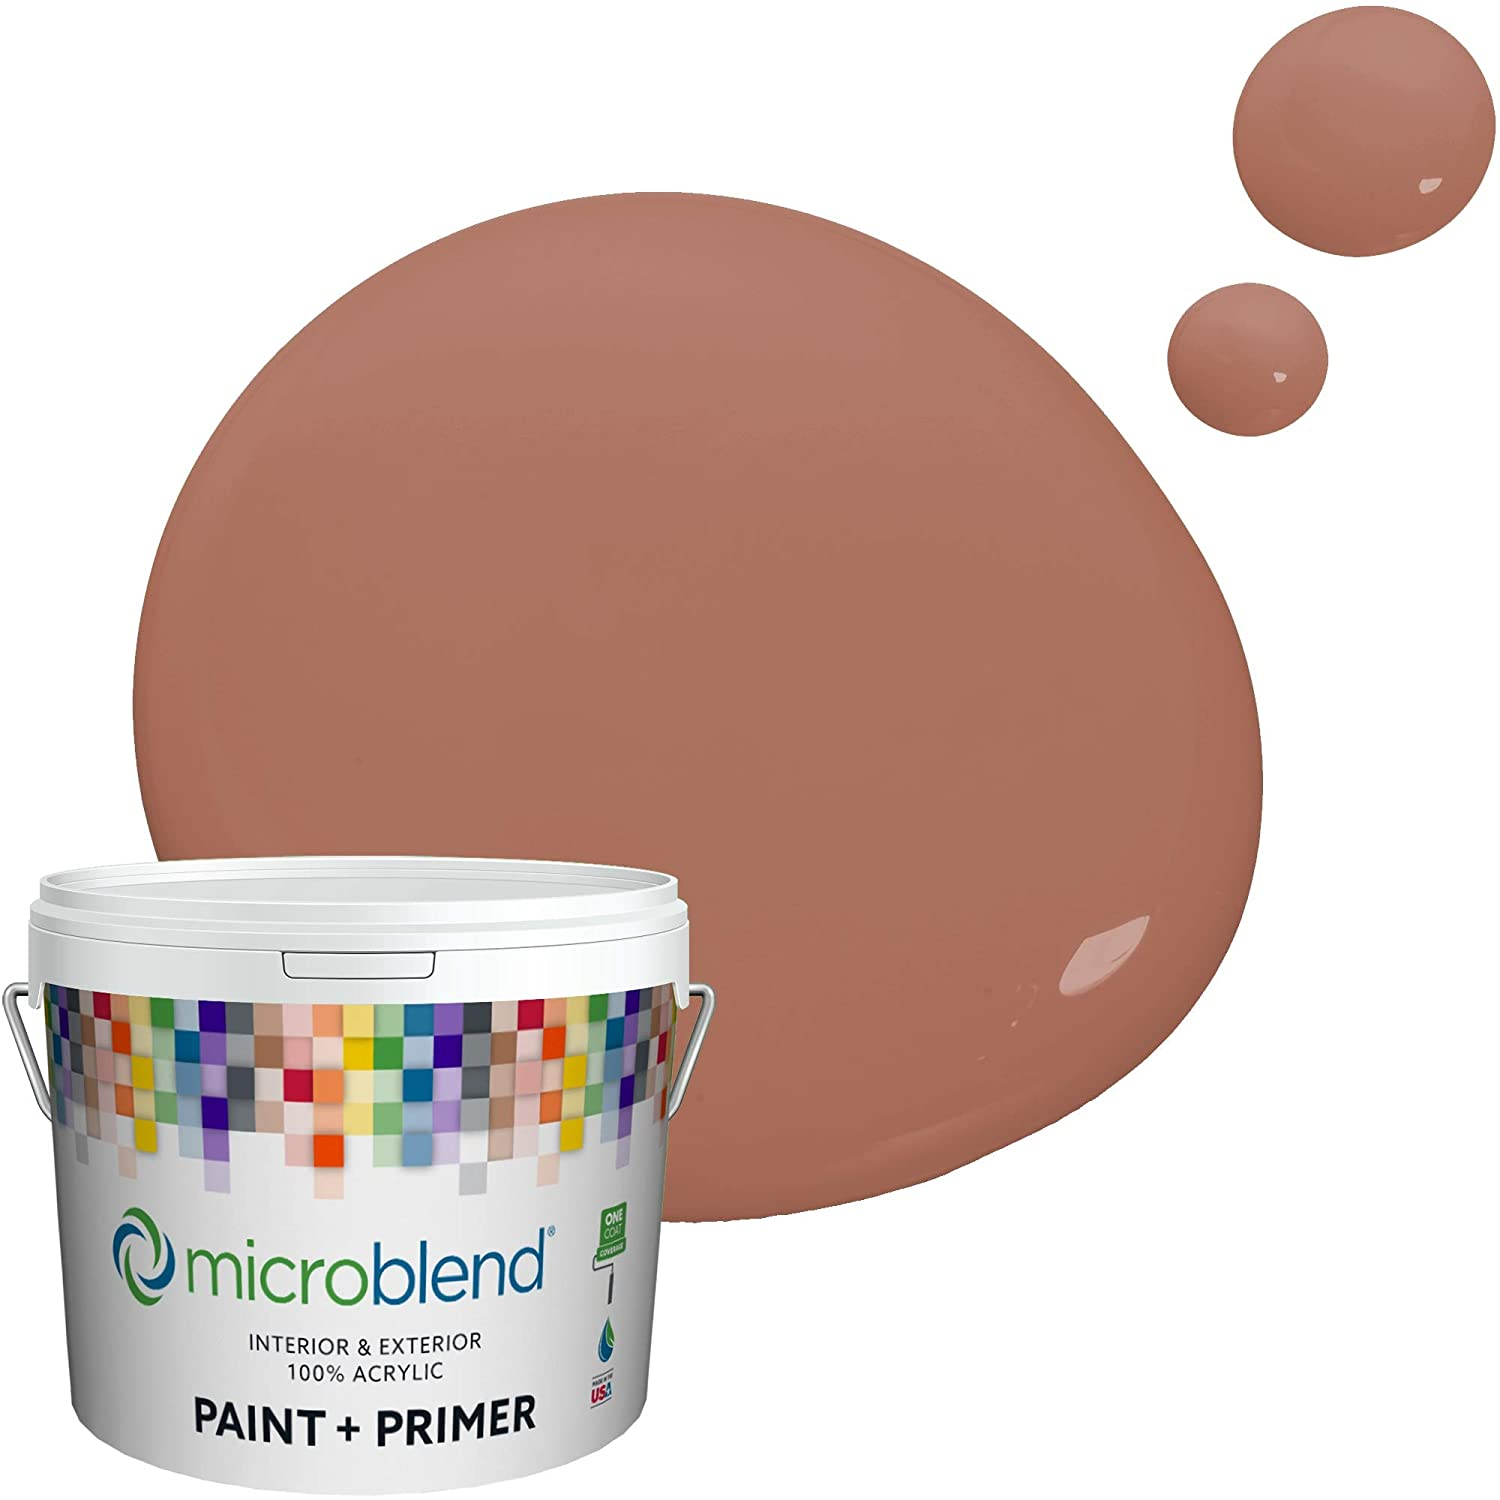 Microblend Interior Paint and Primer - Maroon/Red Headed Beauty, Flat Sheen, 1-Gallon, Premium Quality, One Coat Hide, Low VOC, Washable, Microblend Oranges Family